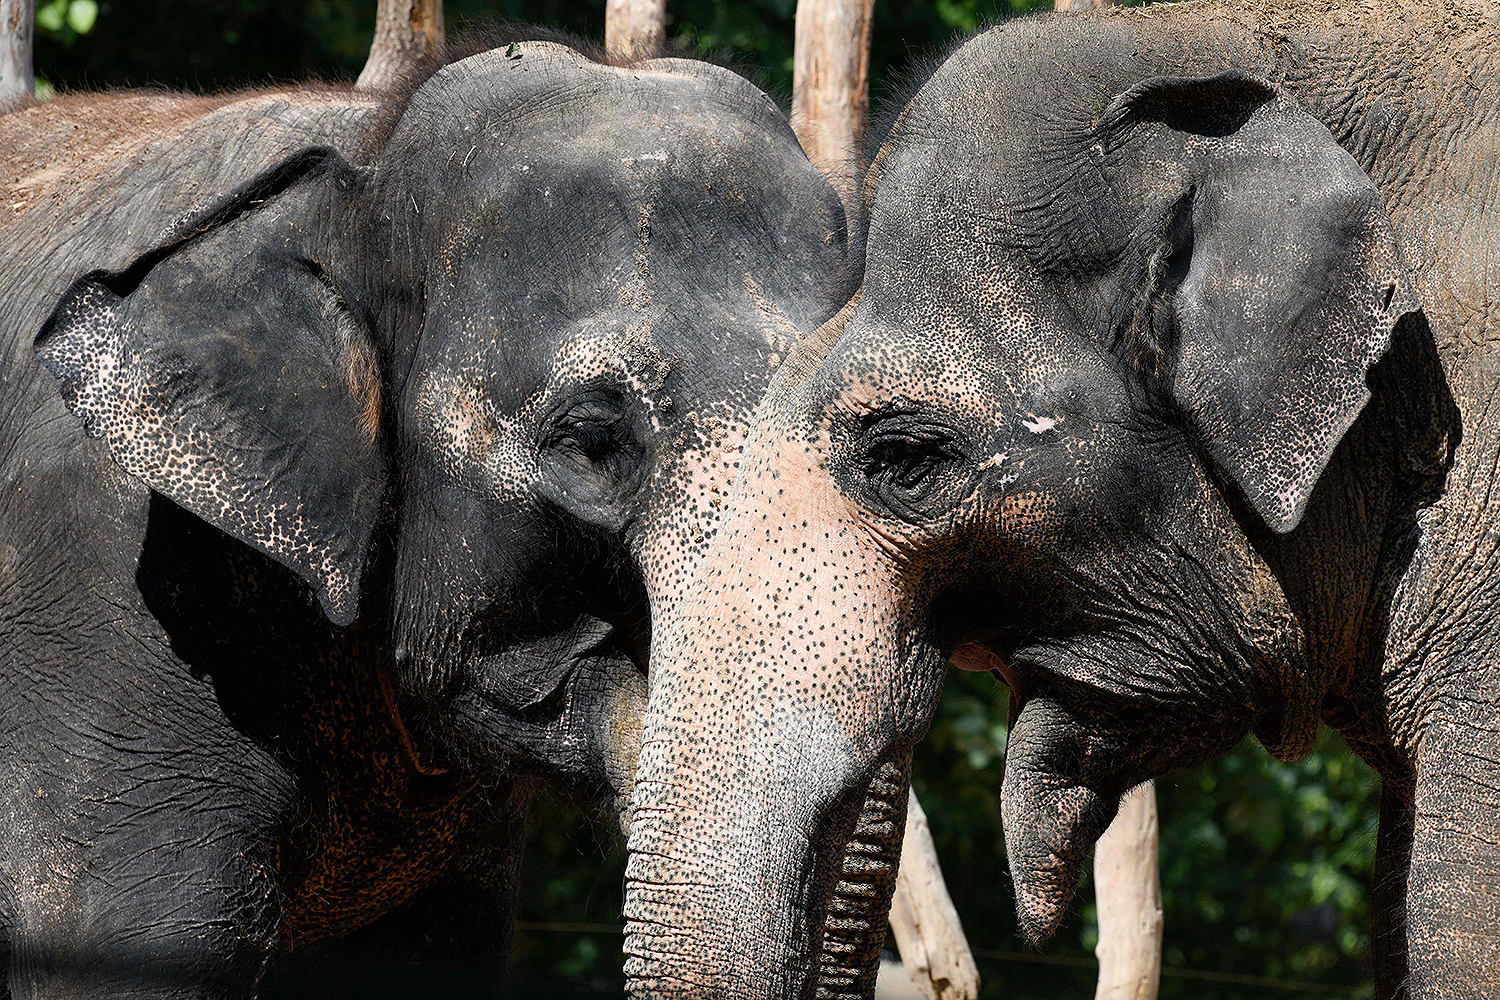 Asian elephants stand next to each other in their enclosure at Wilhelma, a botanical-zoological garden in Stuttgart, Germany, on May 20. THOMAS KIENZLE/AFP /AFP via Getty Images